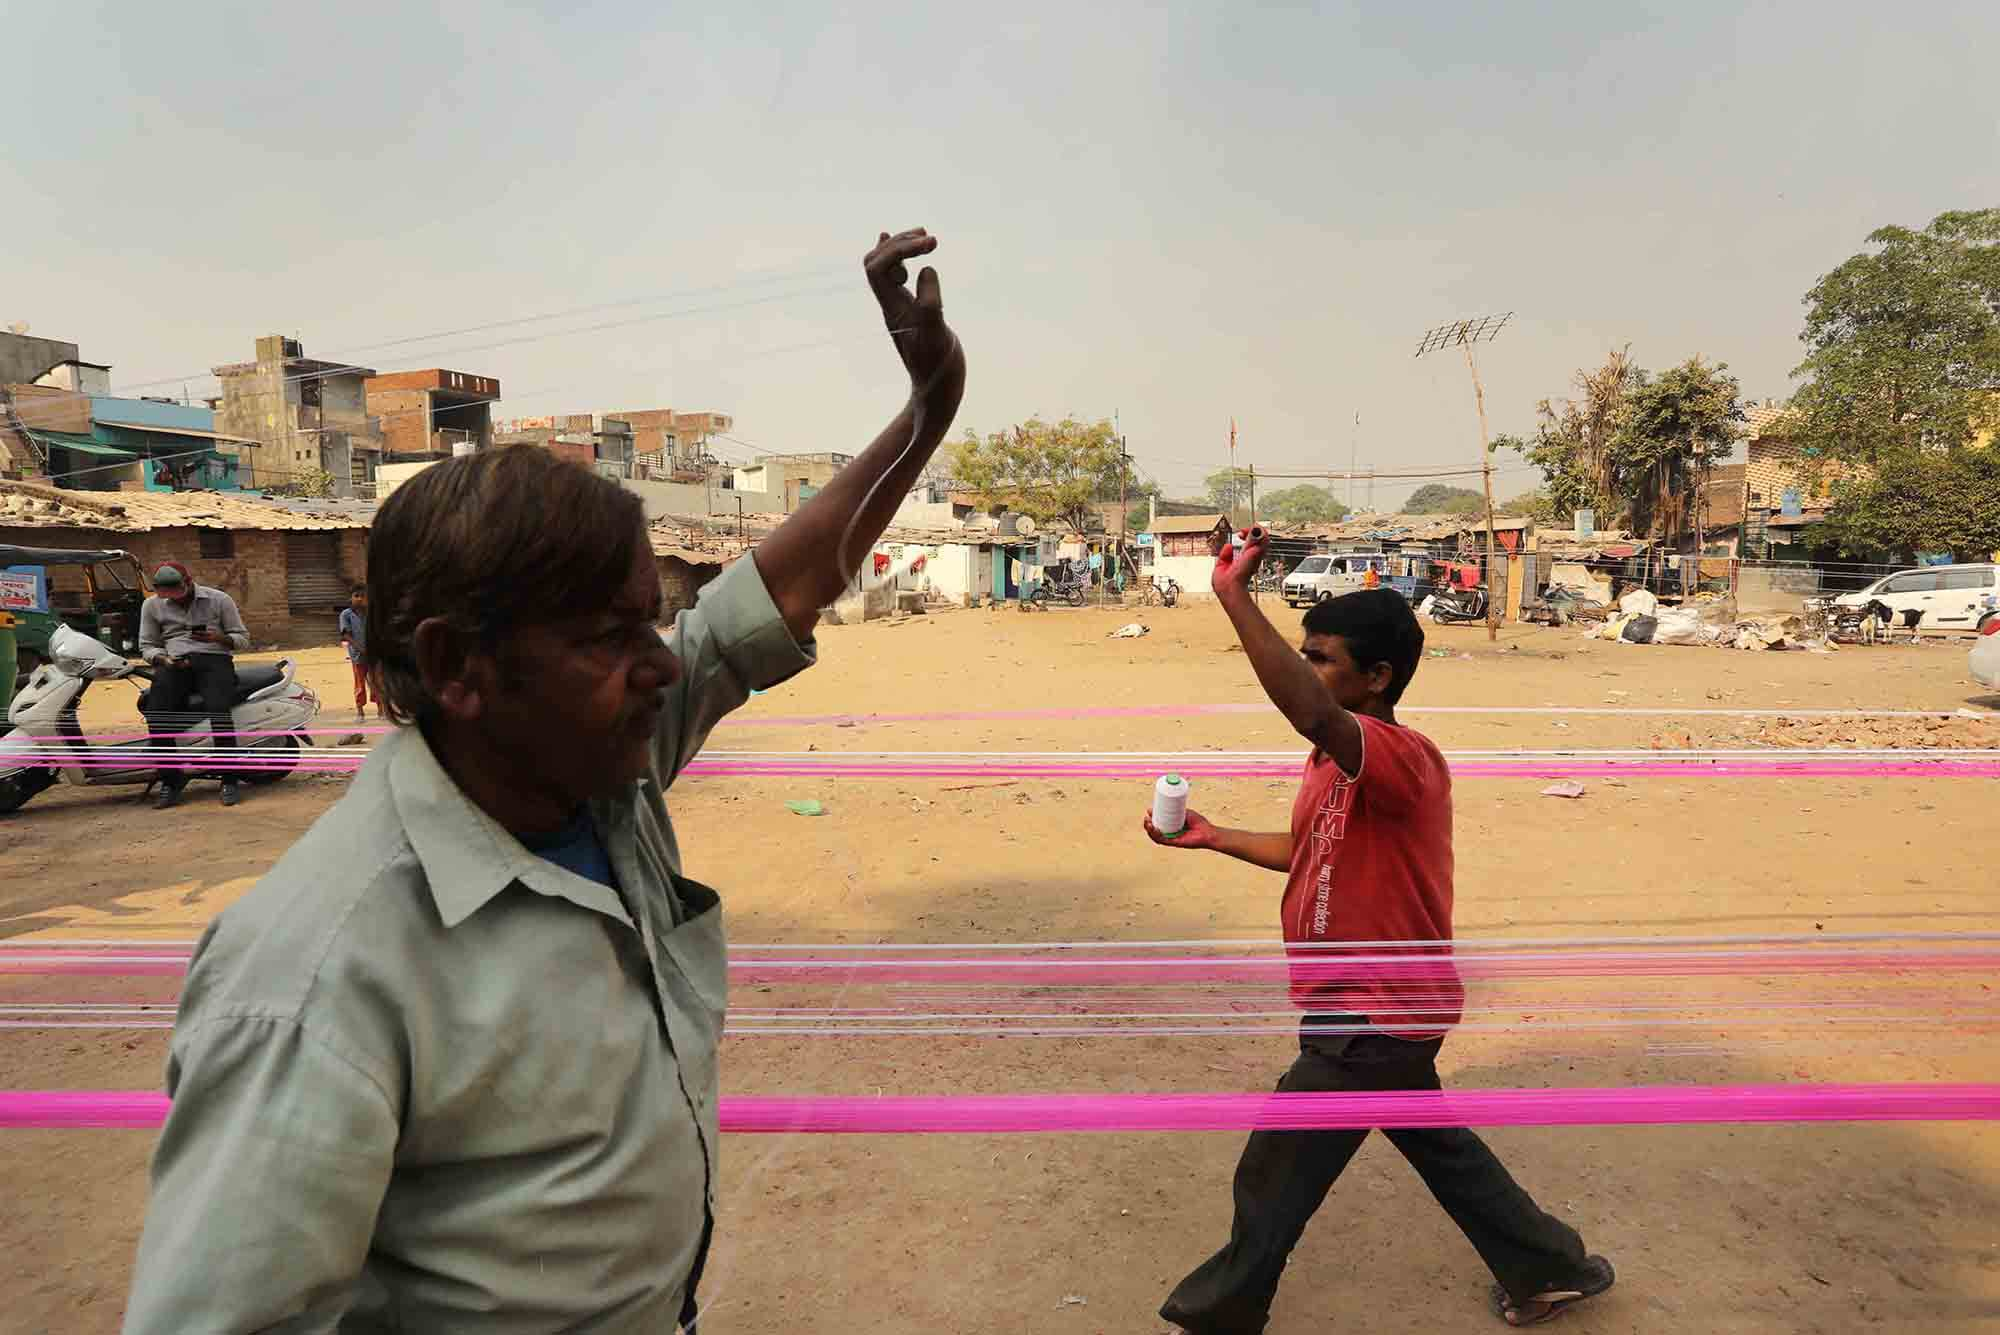 two men run lines of coloured thread across an urban space